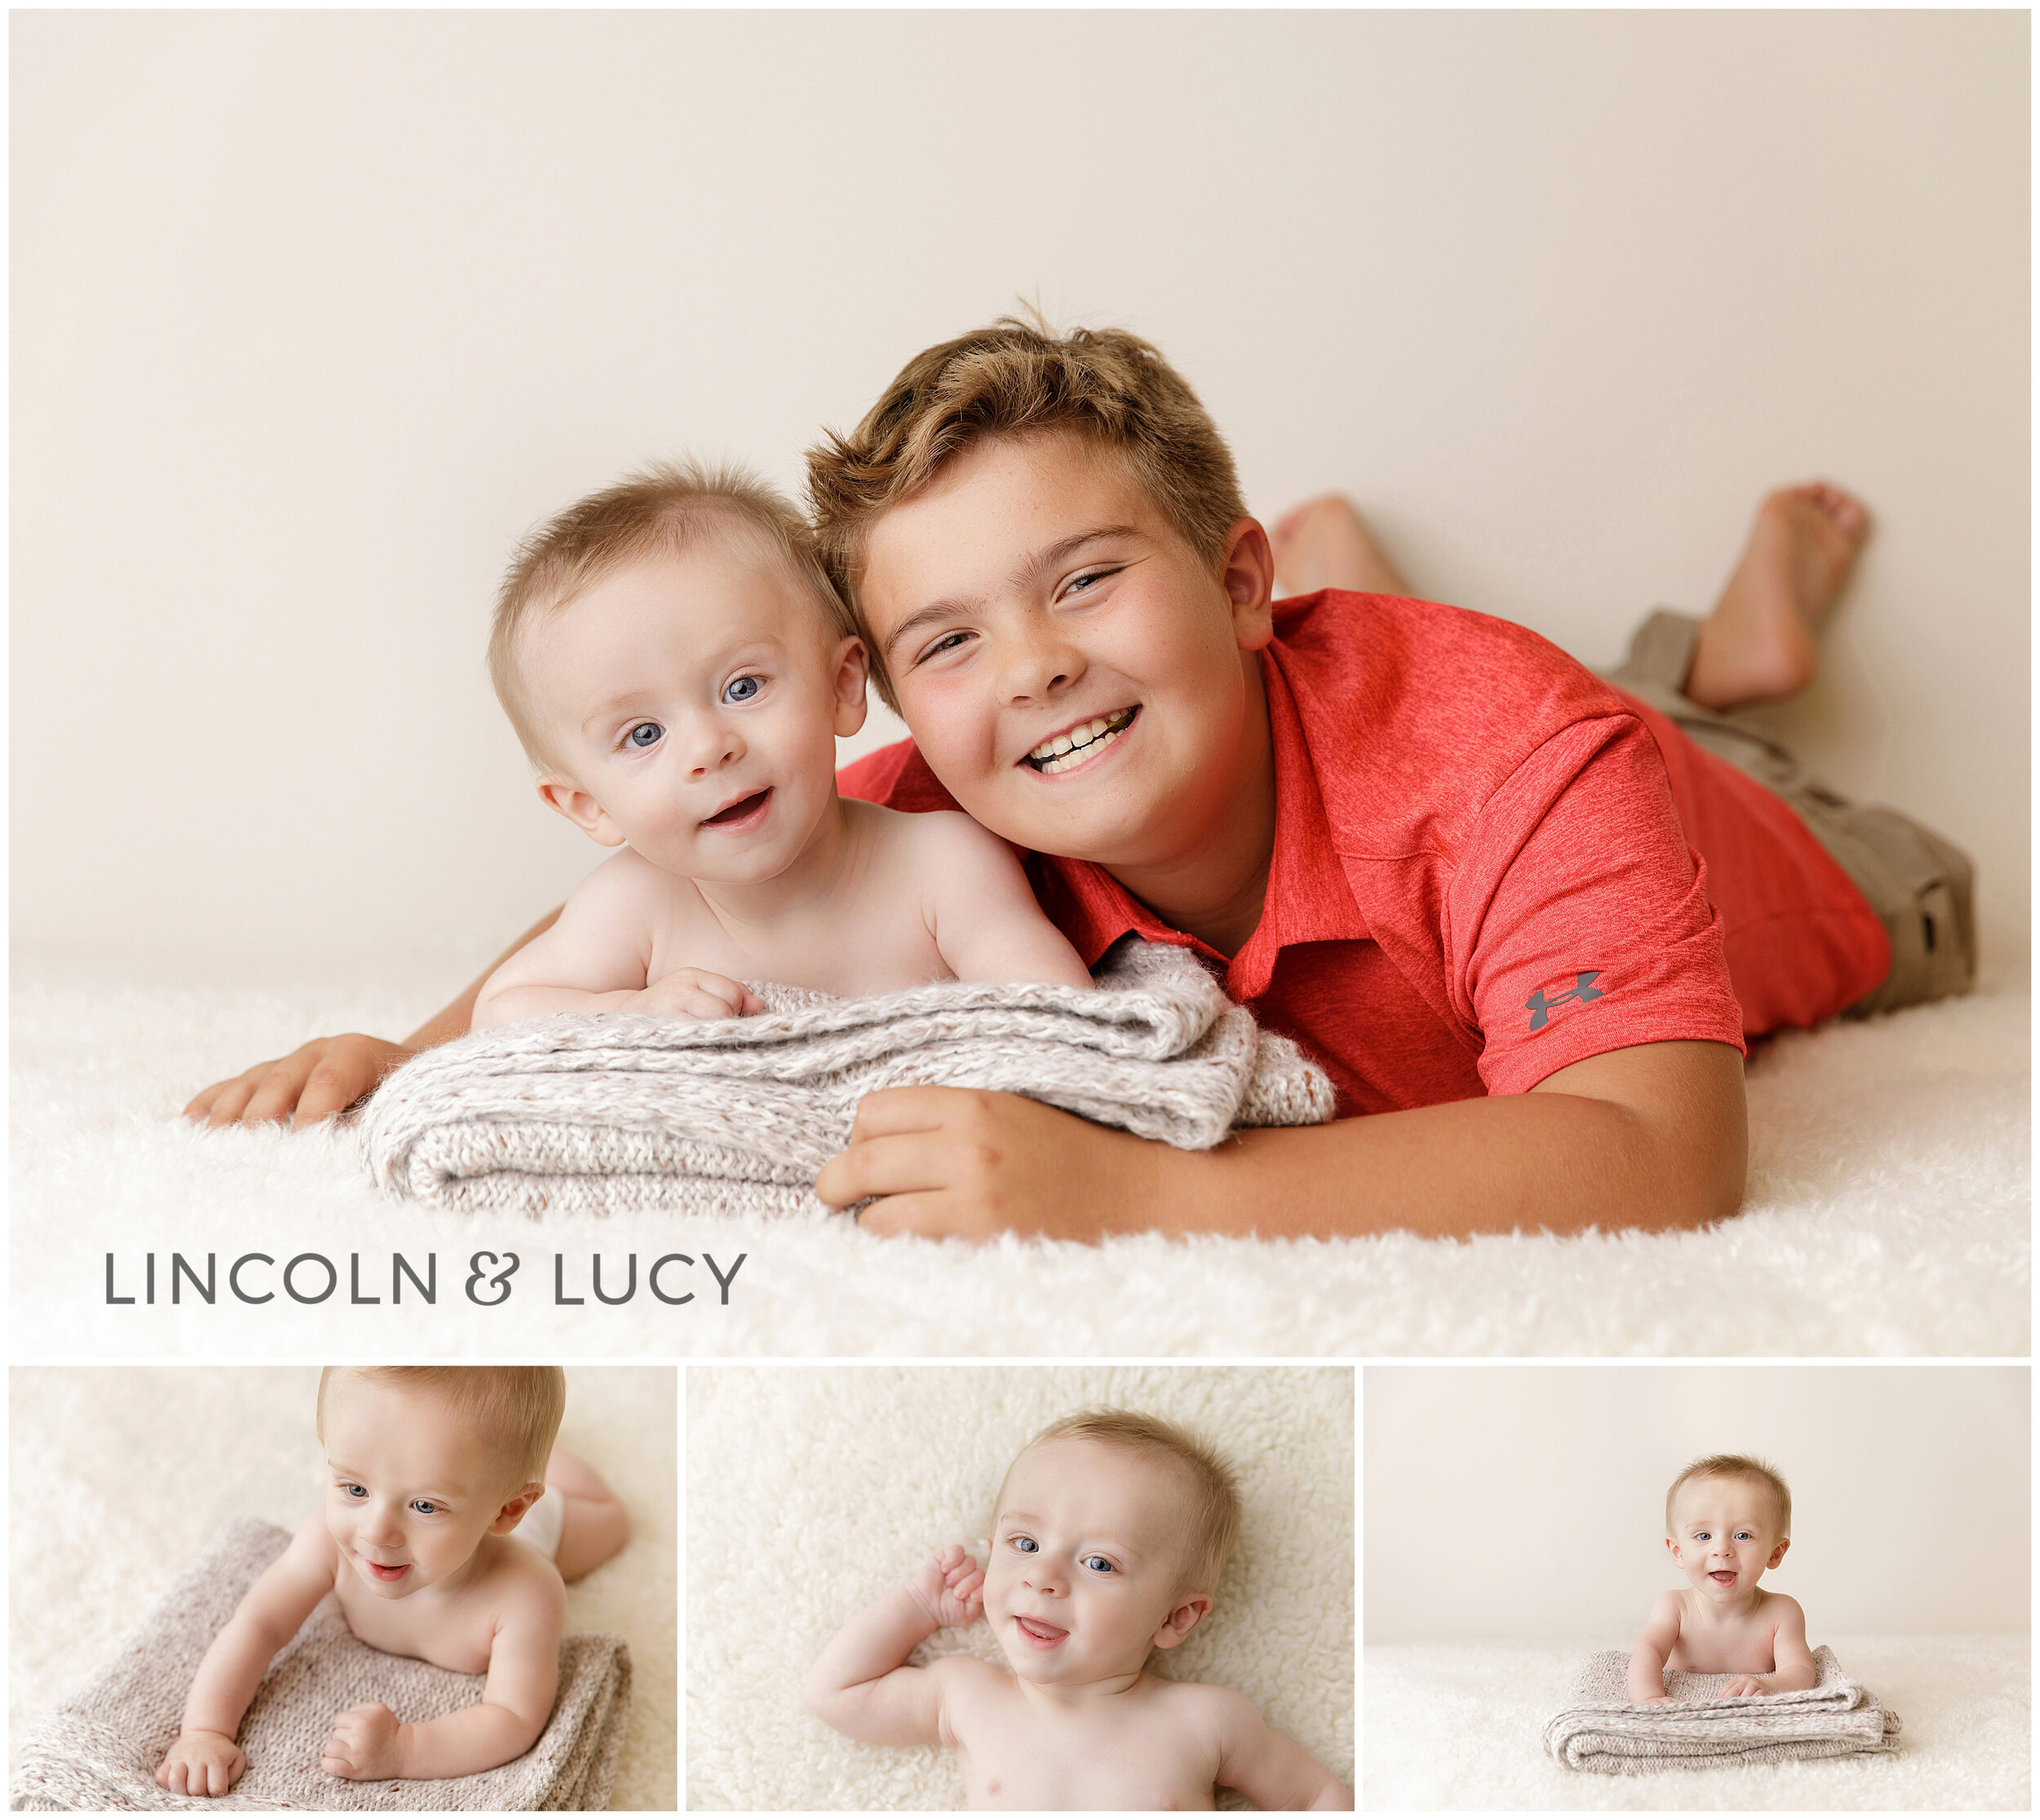 6 month old baby picture with sibling